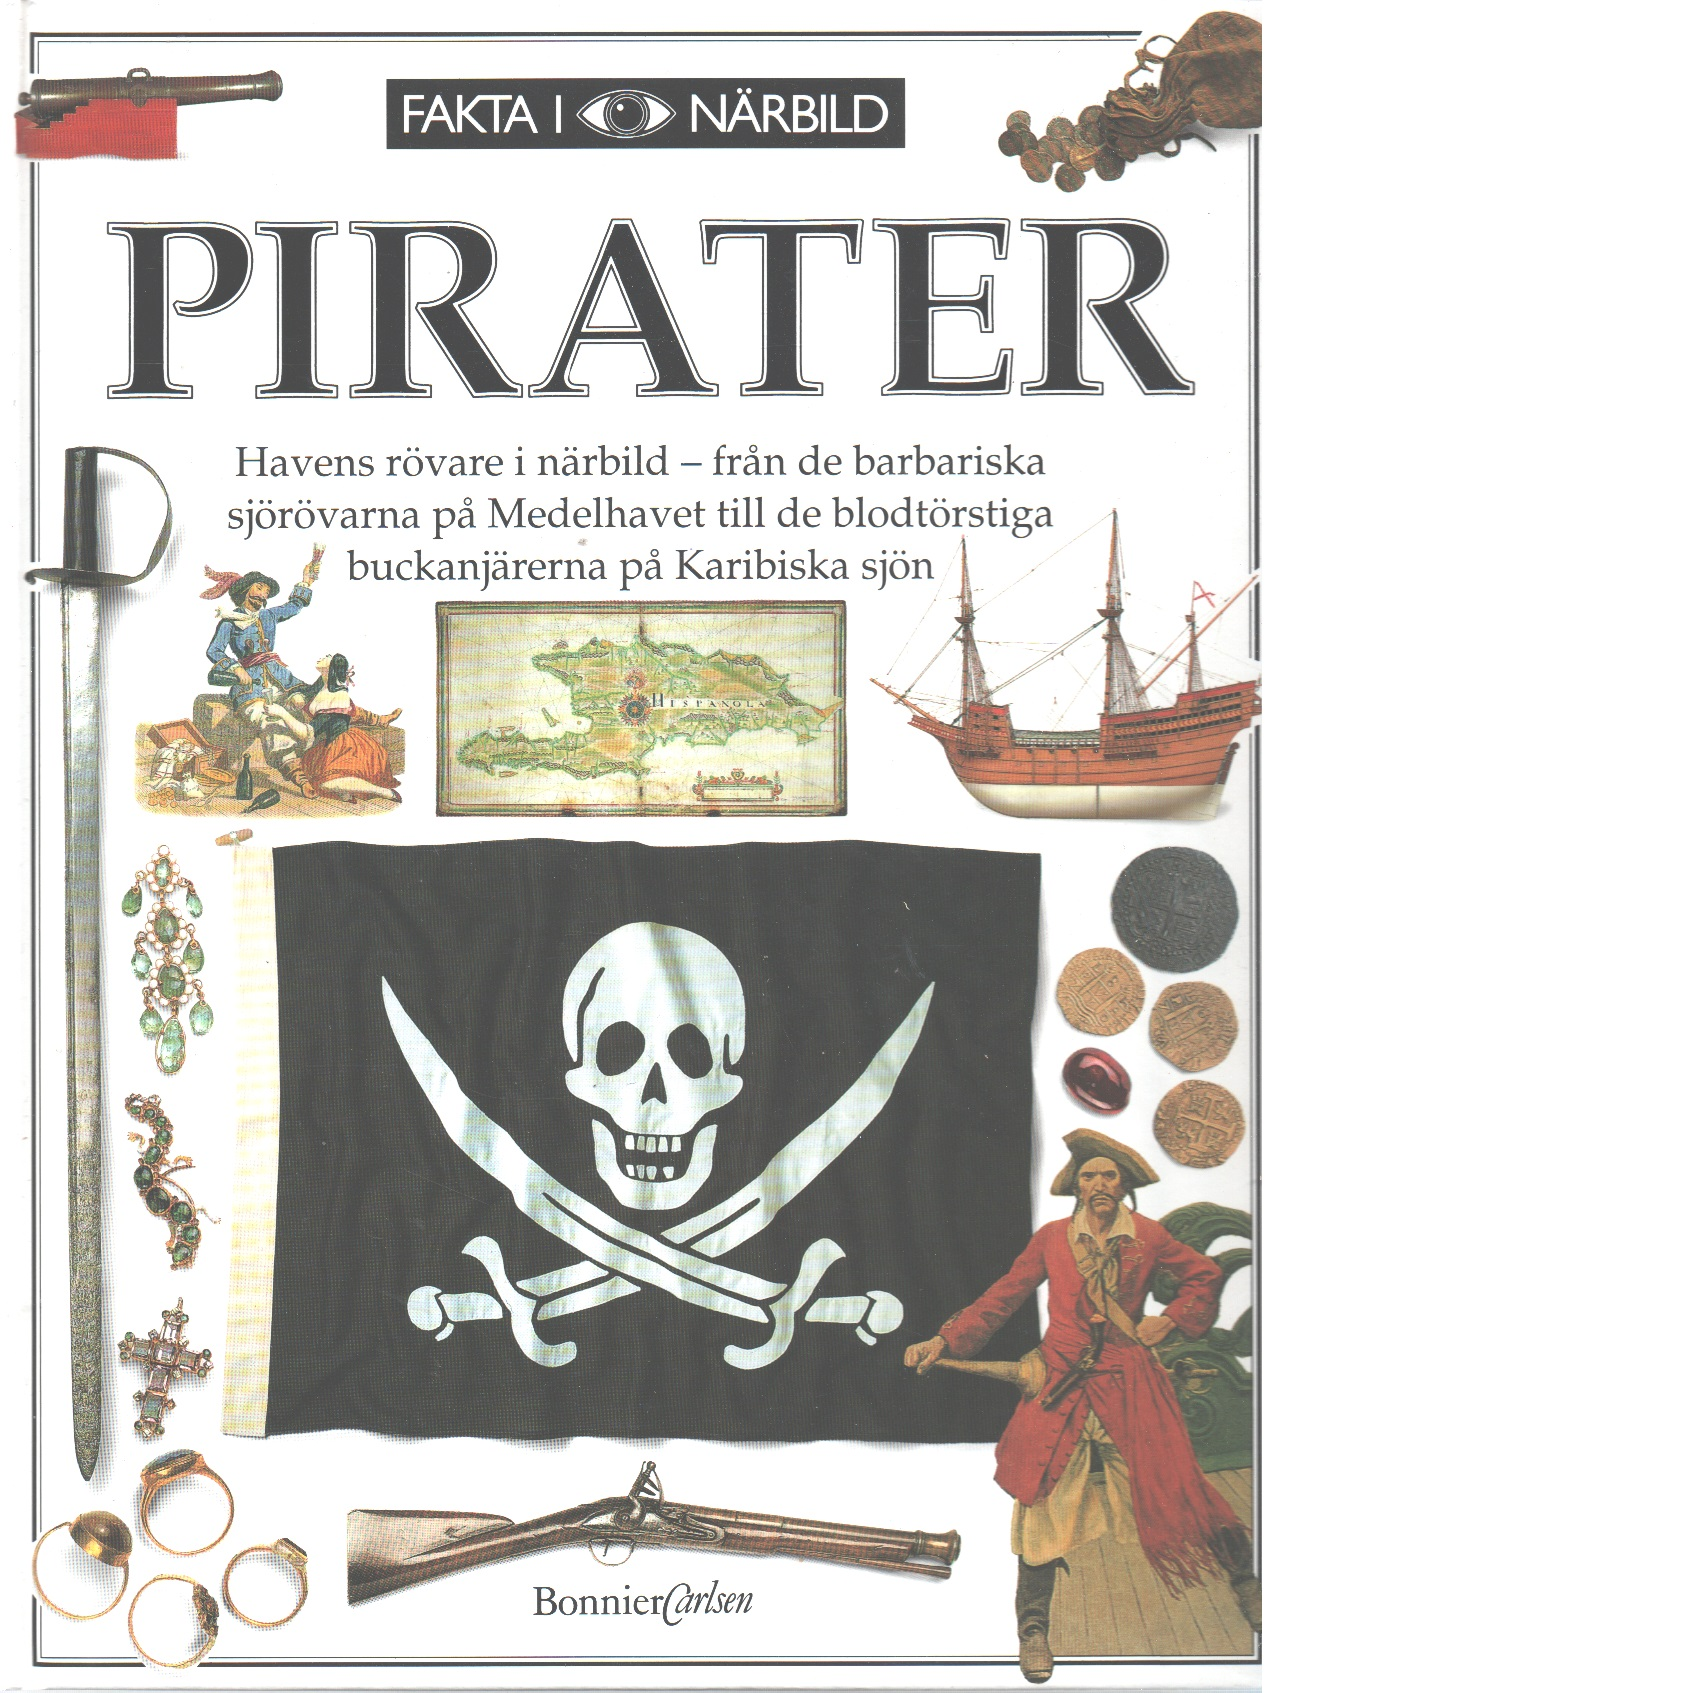 Pirater - Platt, Richard